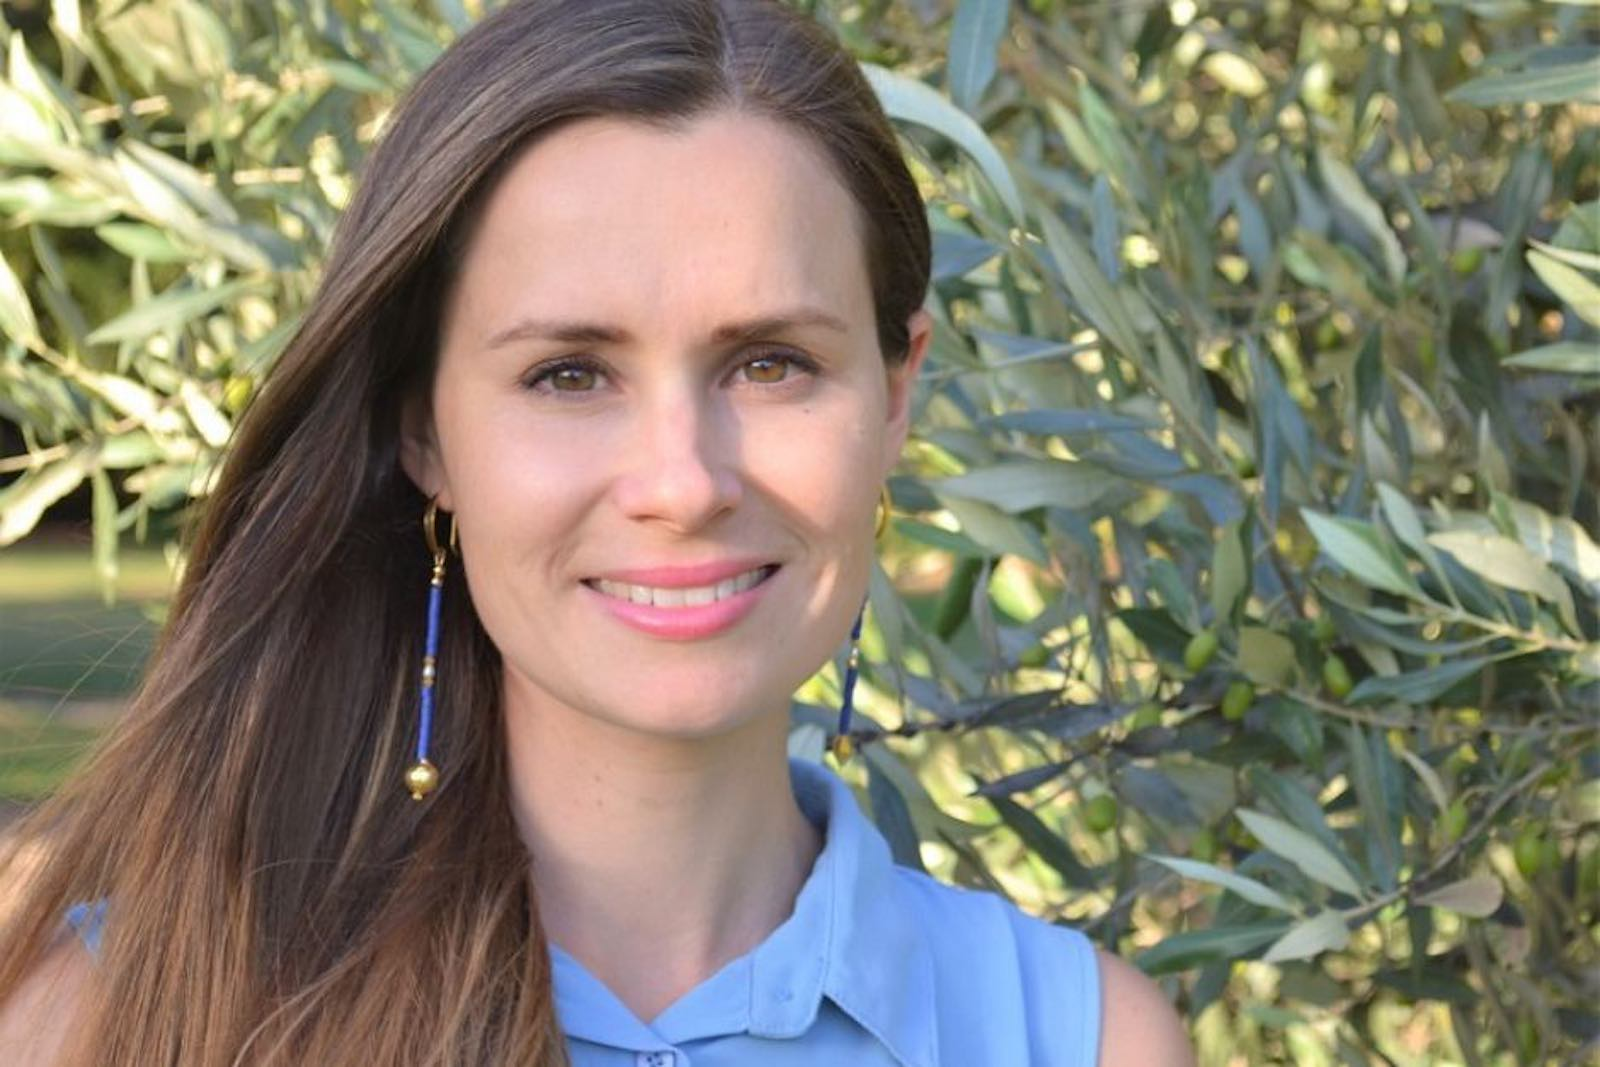 University of Melbourne lecturer Kylie Moore-Gilbert has been accused of espionage in Iran and sentenced to 10 years jail (Photo: University of Melbourne)